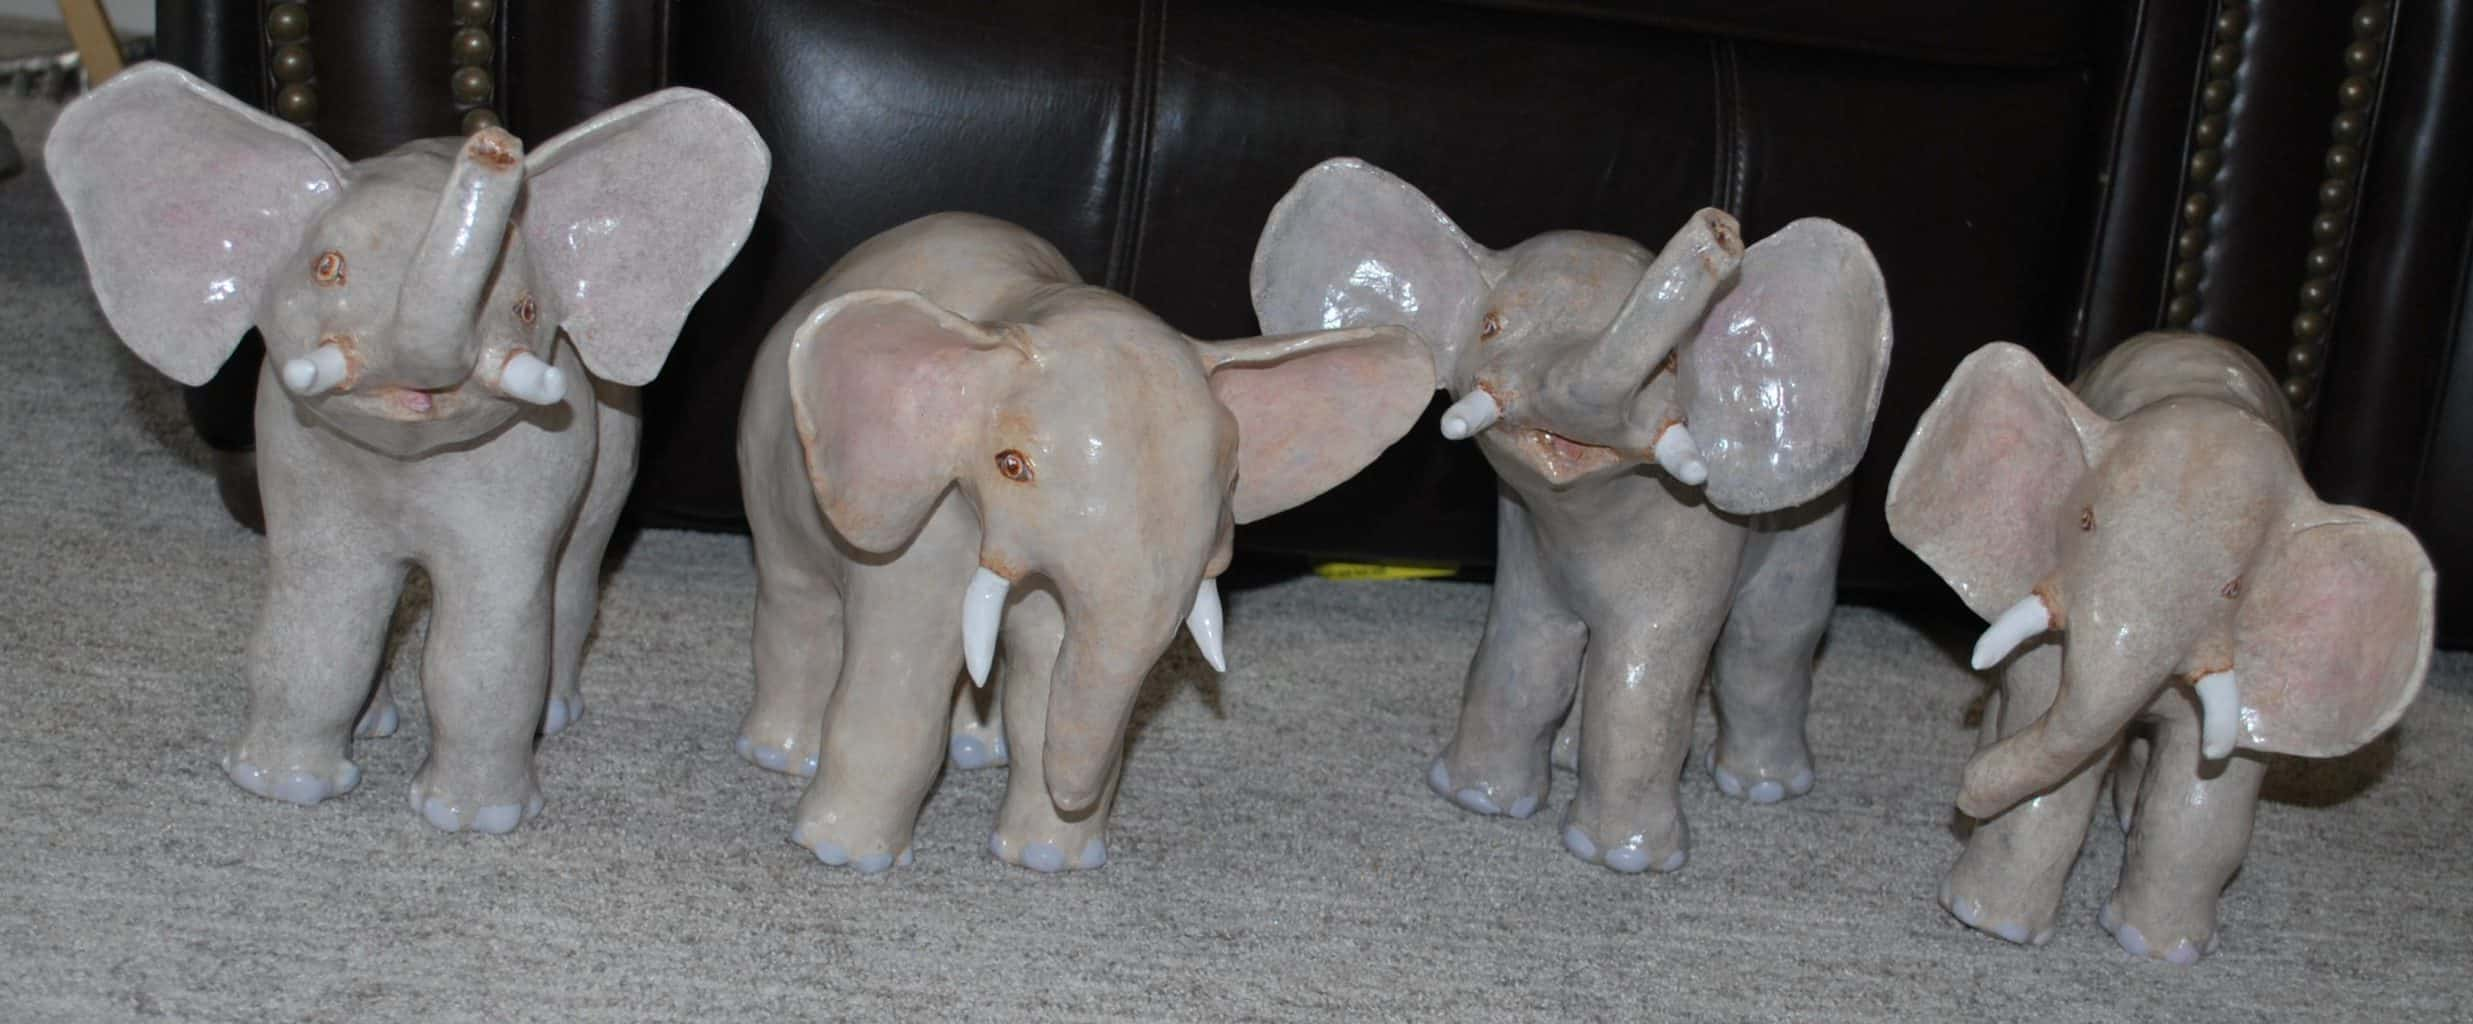 Elephants made with paper mache clay